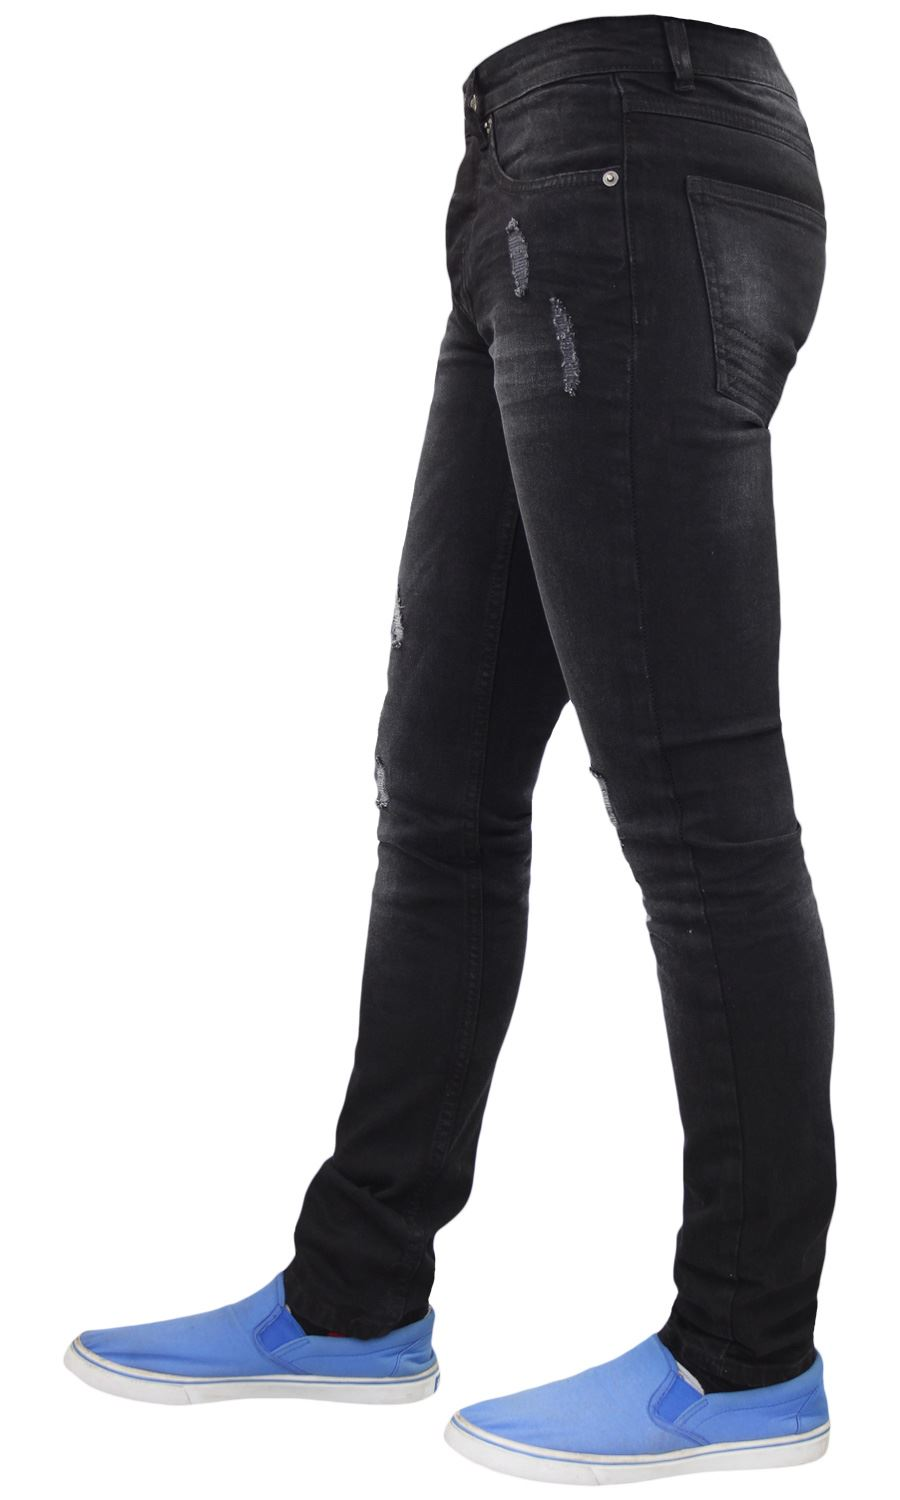 Mens-Skinny-Stretch-Ripped-Jeans-Slim-Fit-Casual-Trousers-Denim-Pants-All-Sizes thumbnail 4